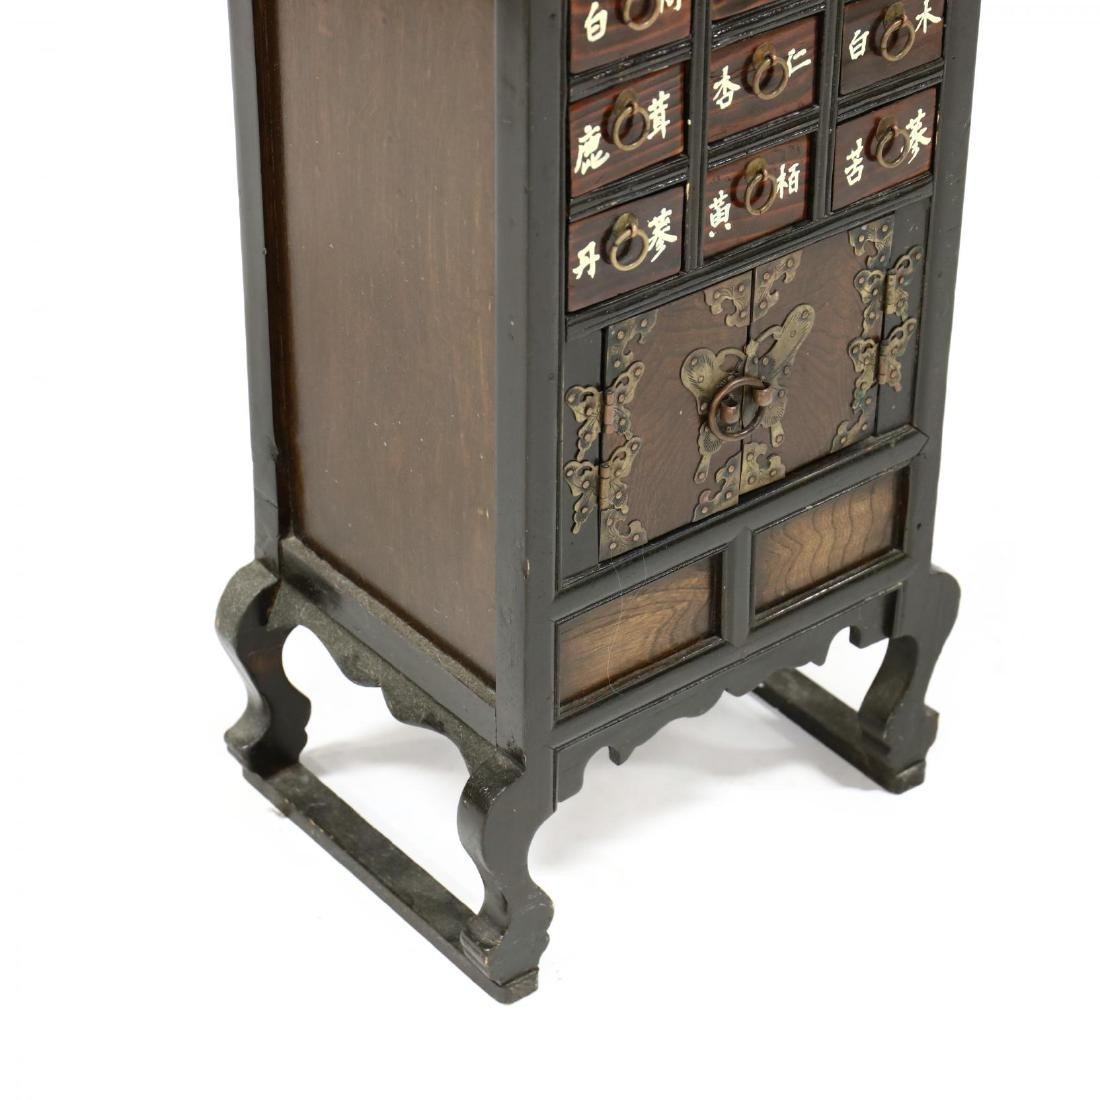 Diminutive Chinese Apothecary Cabinet - 3